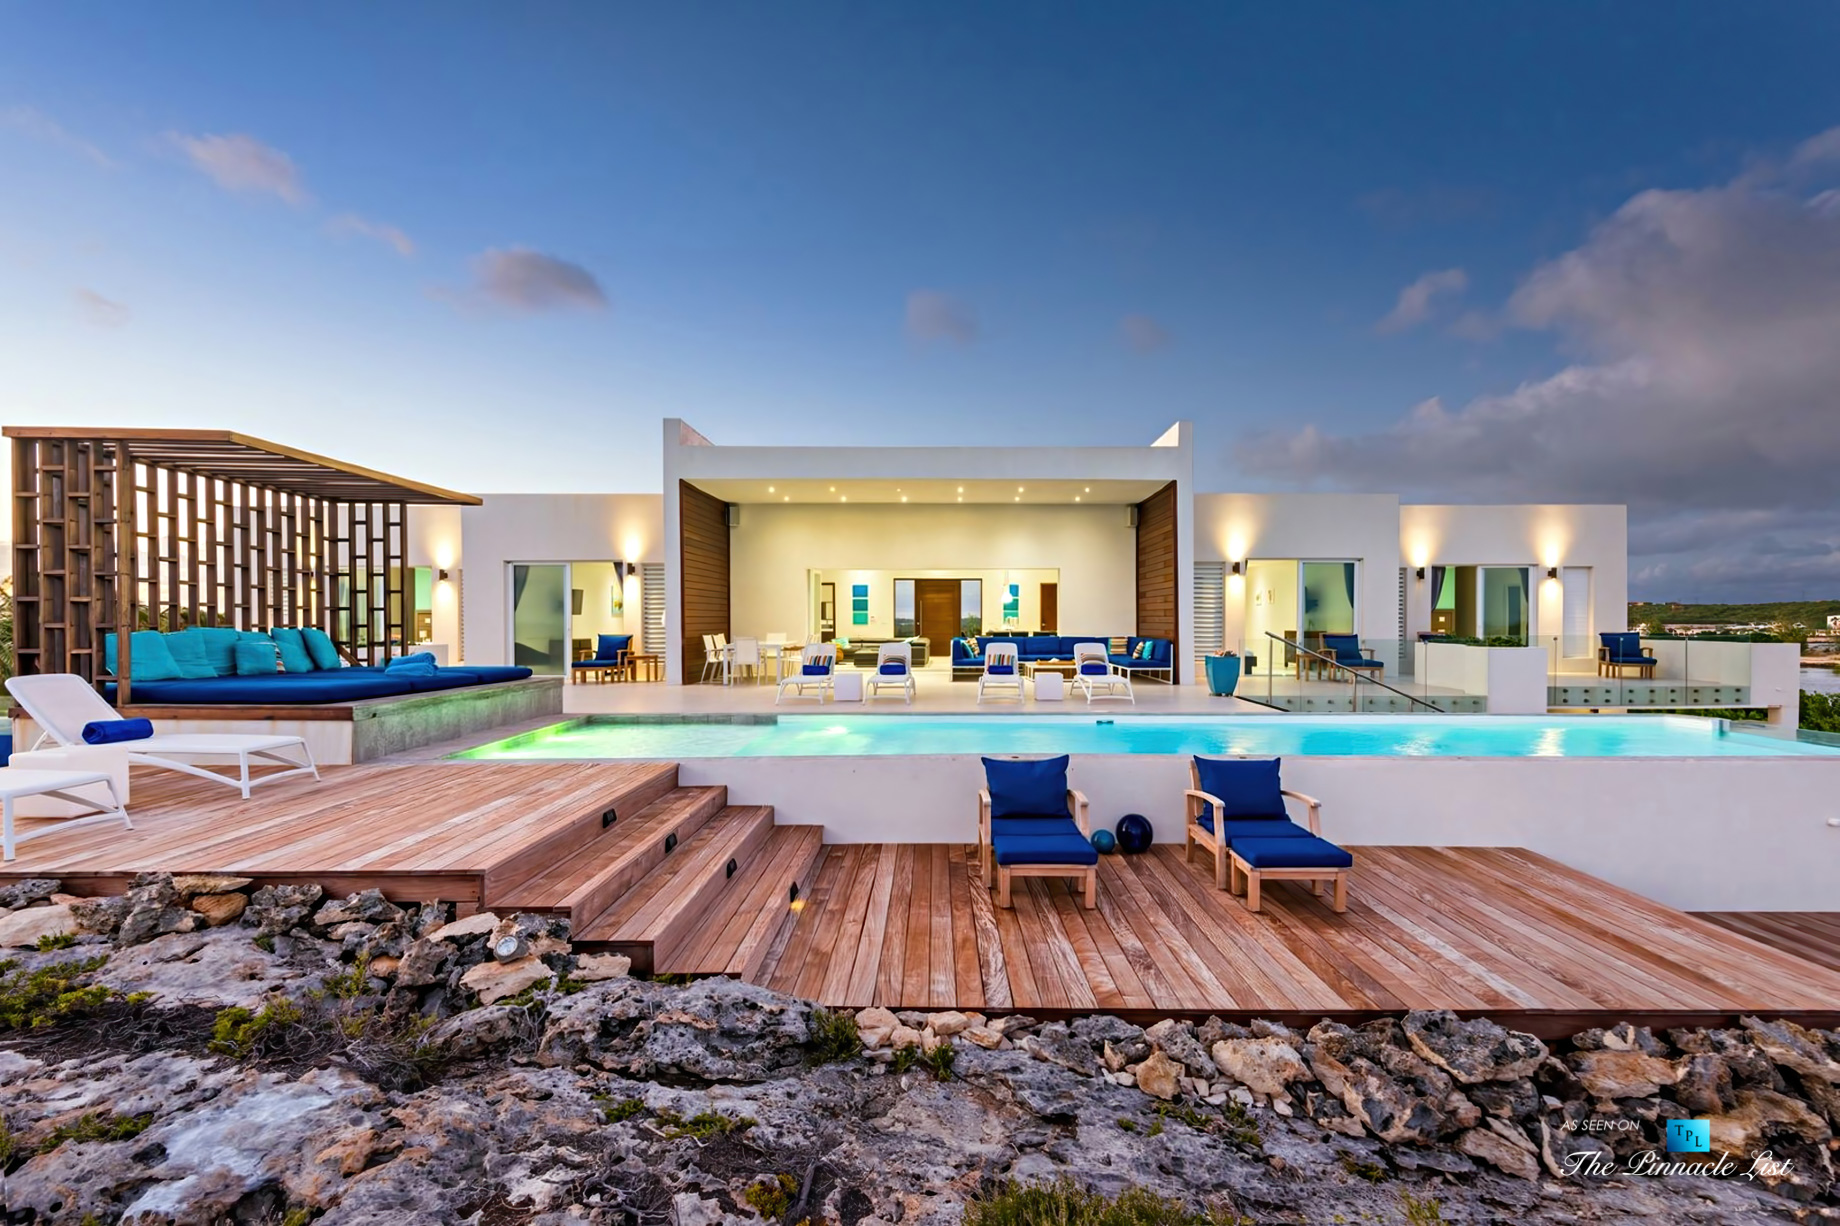 Tip of the Tail Luxury Villa - Providenciales, Turks and Caicos Islands - Sunset Deck View